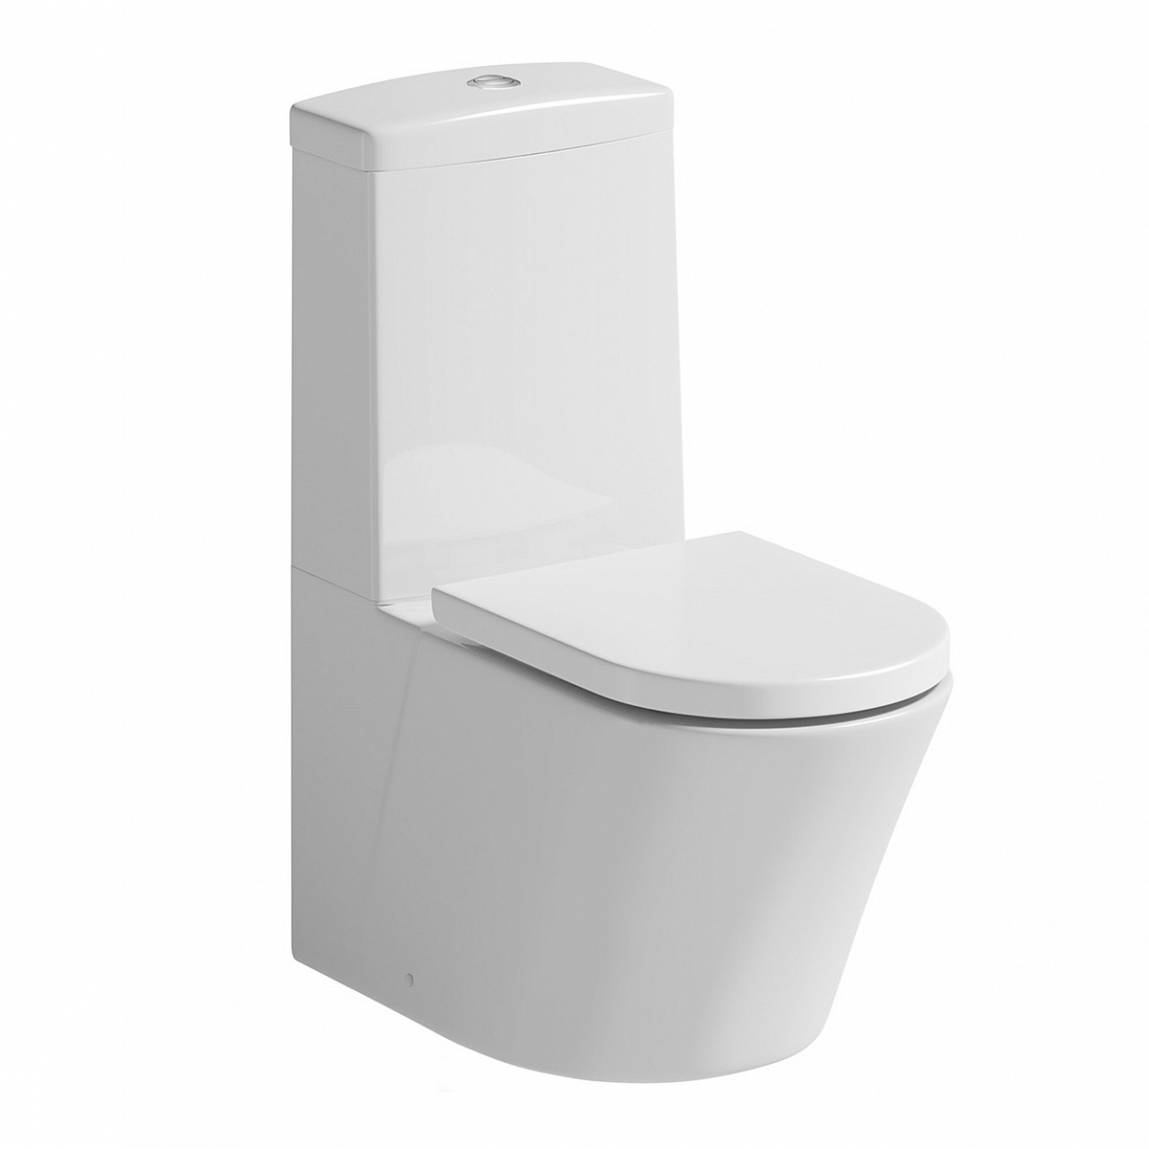 Image of Arc Close Coupled Toilet inc. Quick Release Soft Close Seat Special Offer